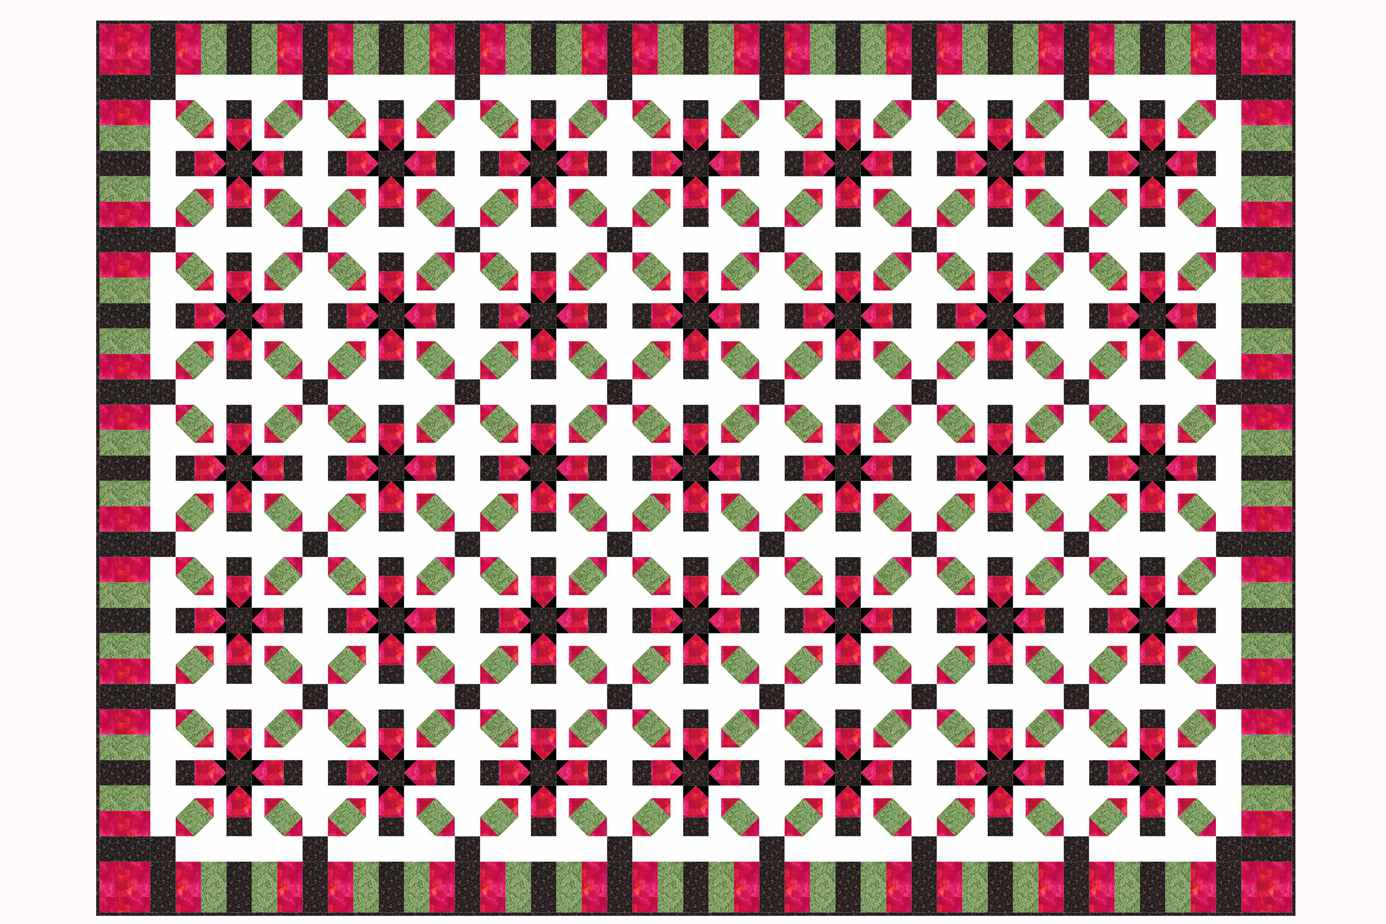 Star Crossing Quilt with Piano Key Borders